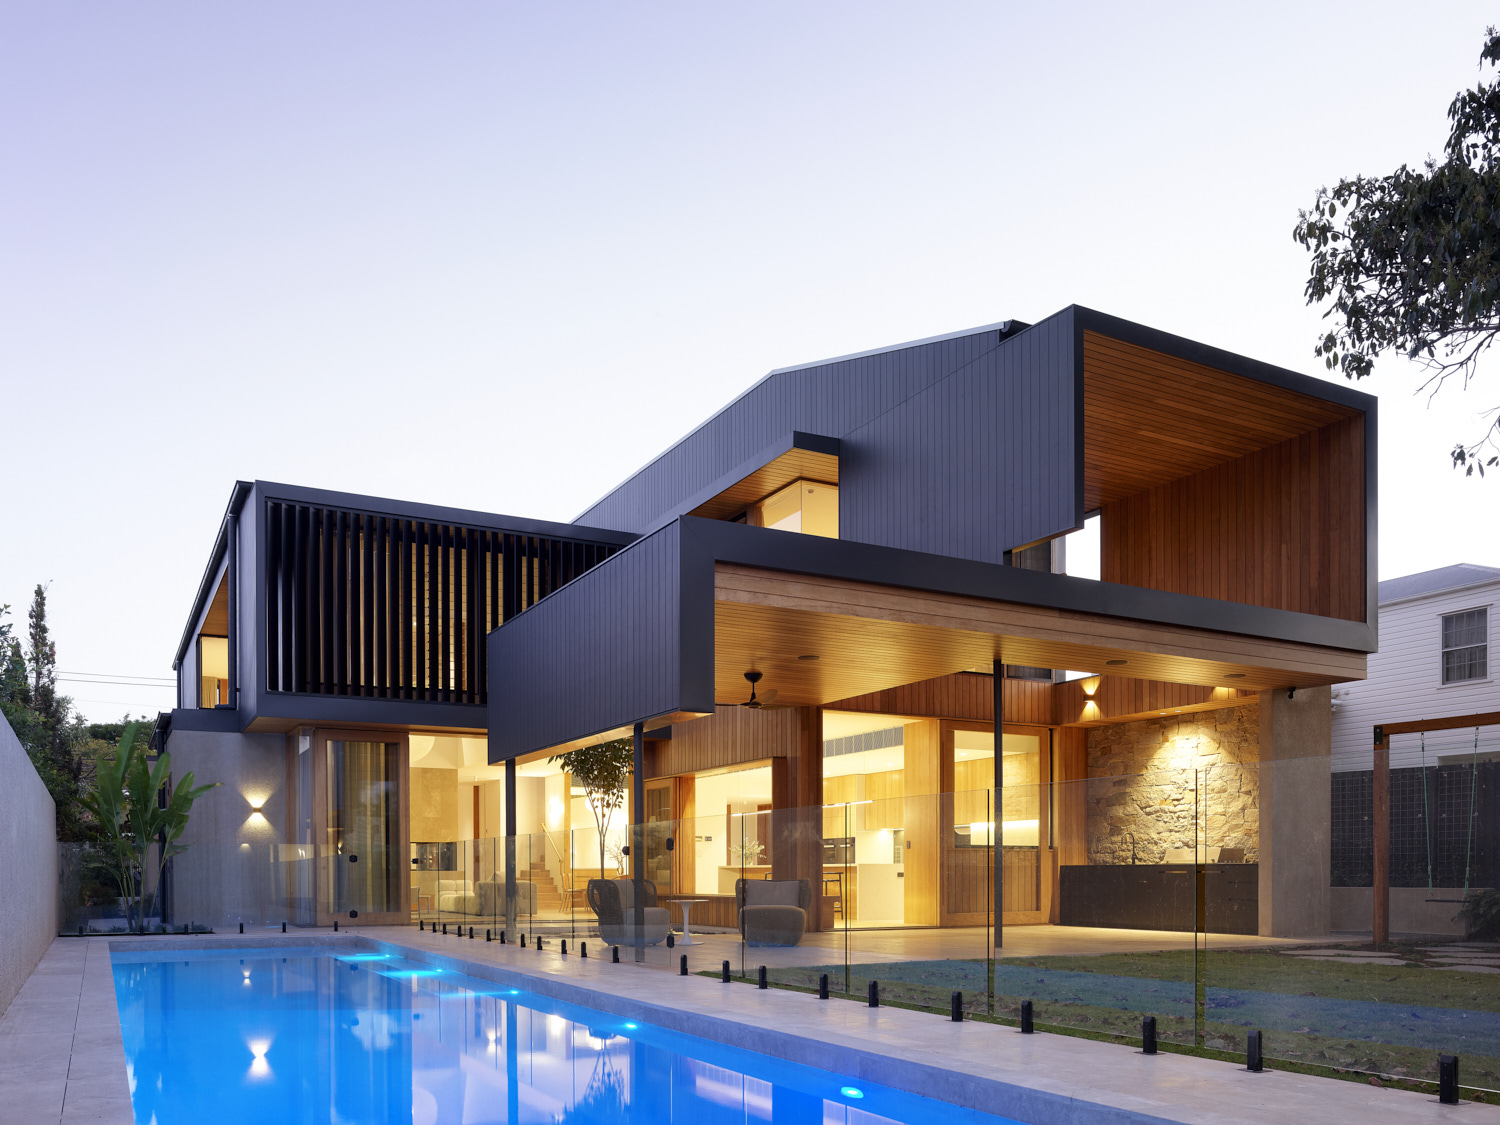 Ascot by Shaun Lockyer Architects + Black Developments